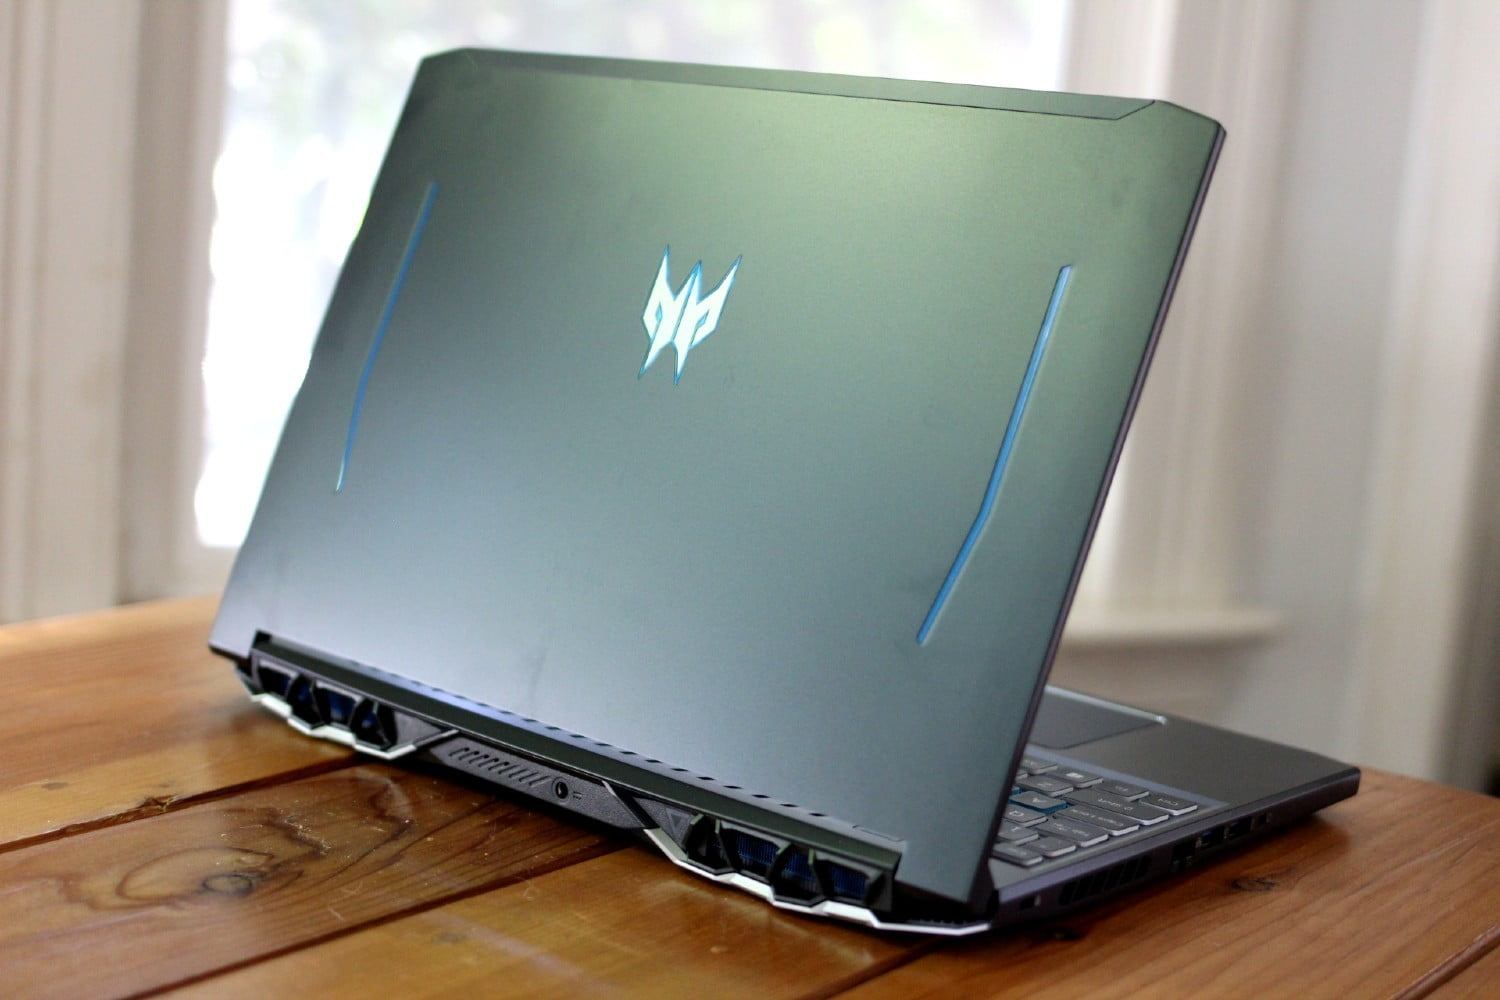 Acer's Predator gaming laptops are upgraded with the RTX 3050 graphics card